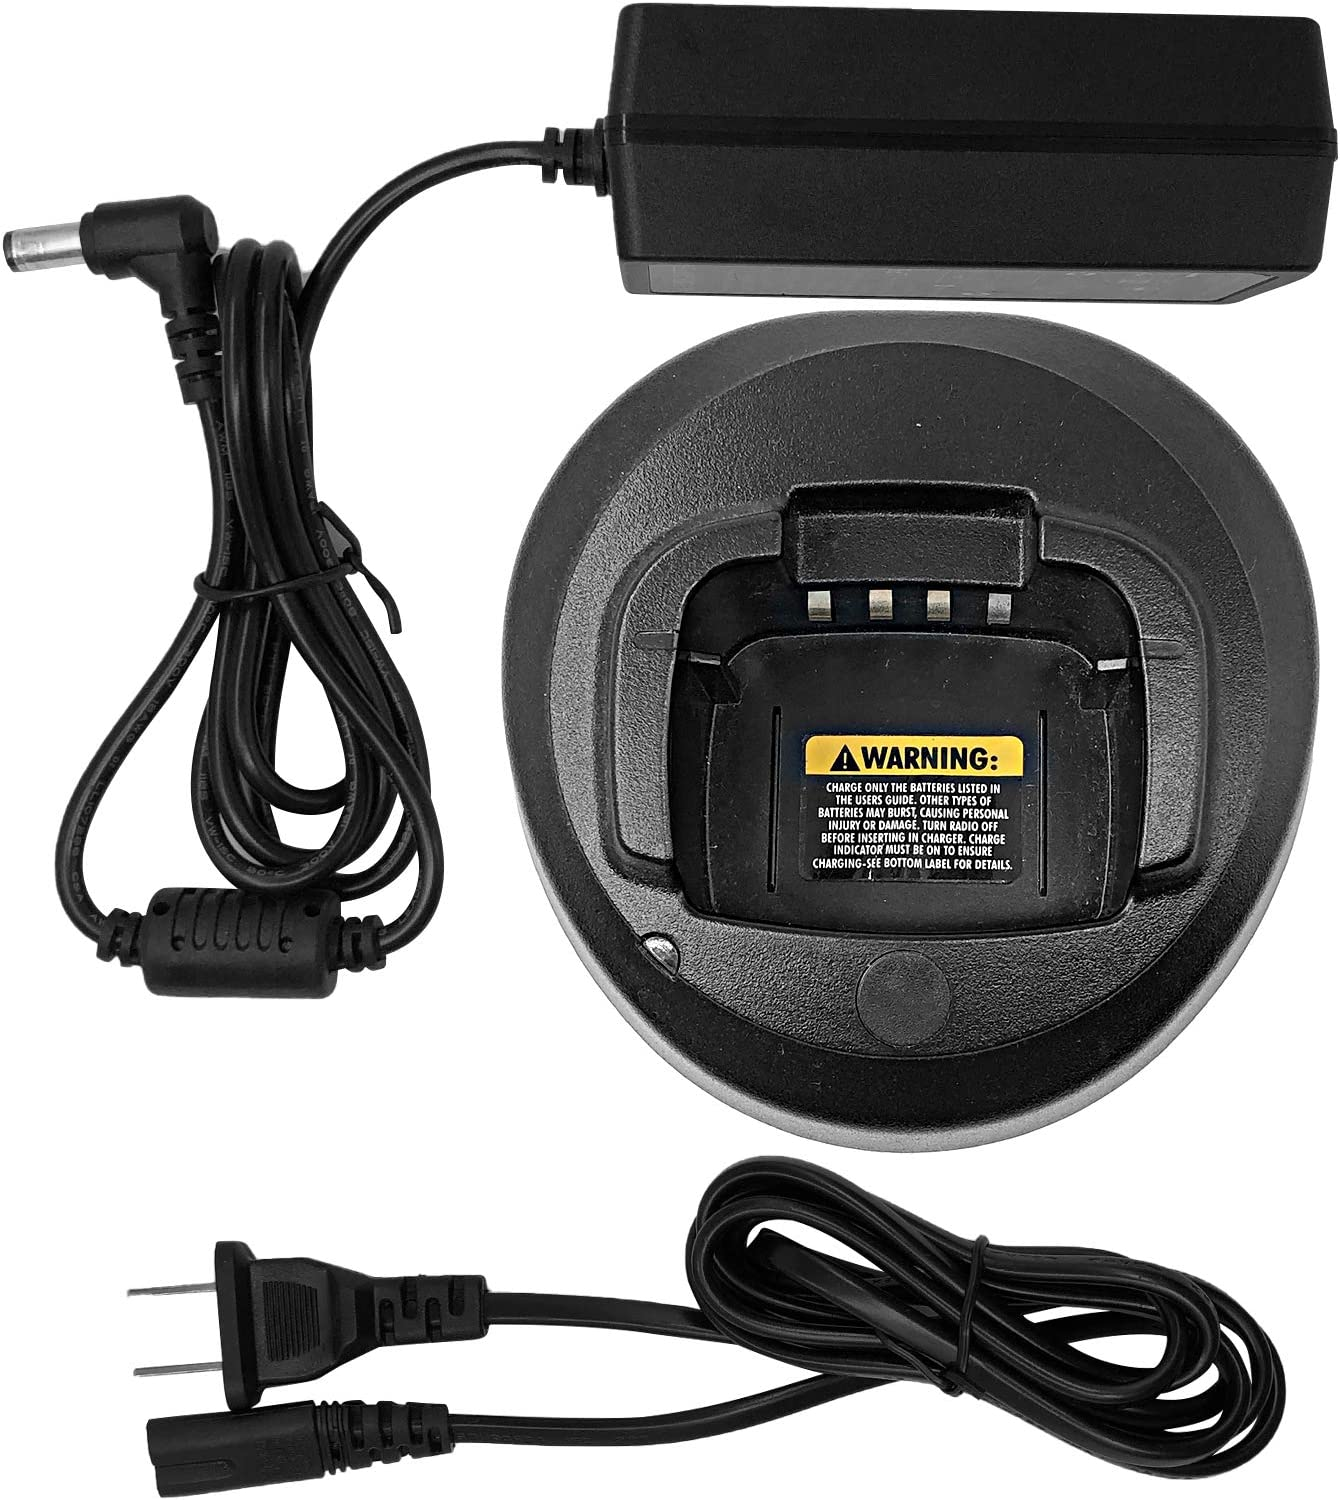 PMLN5228 Li-ion Batteries Rapid Charger for Motorola Radios CP185 EP350